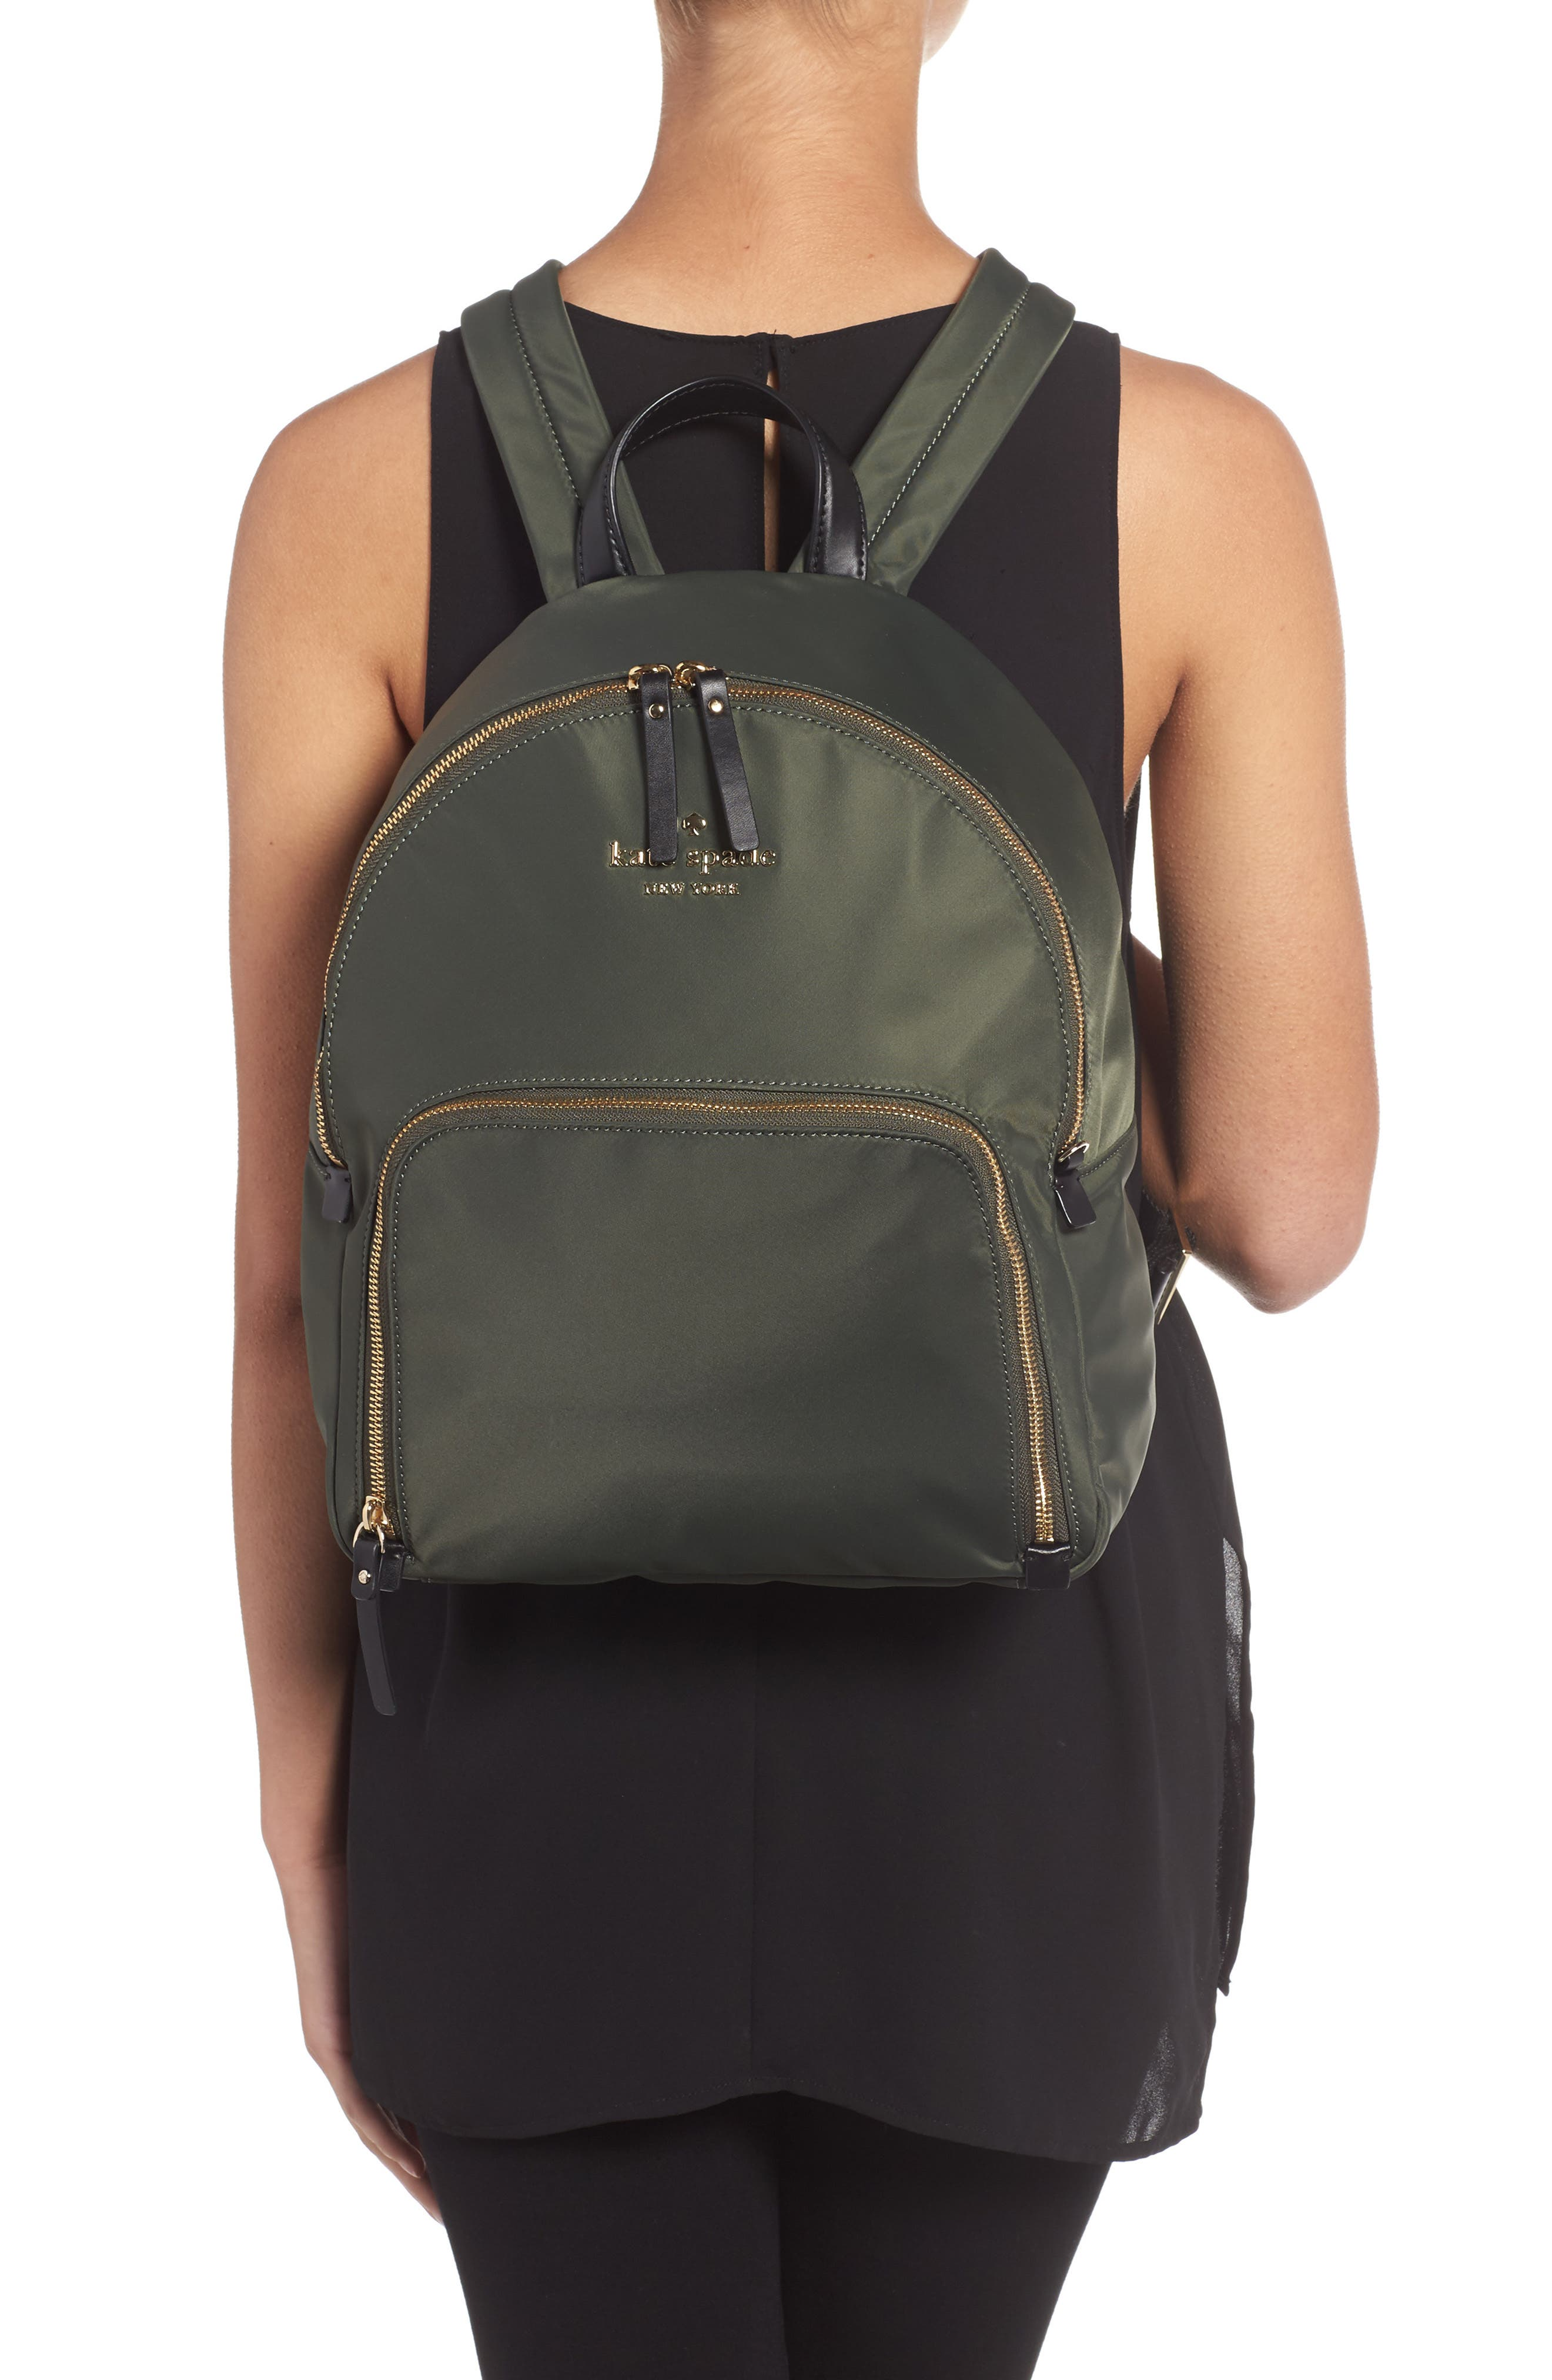 watson lane - hartley nylon backpack,                             Alternate thumbnail 2, color,                             316